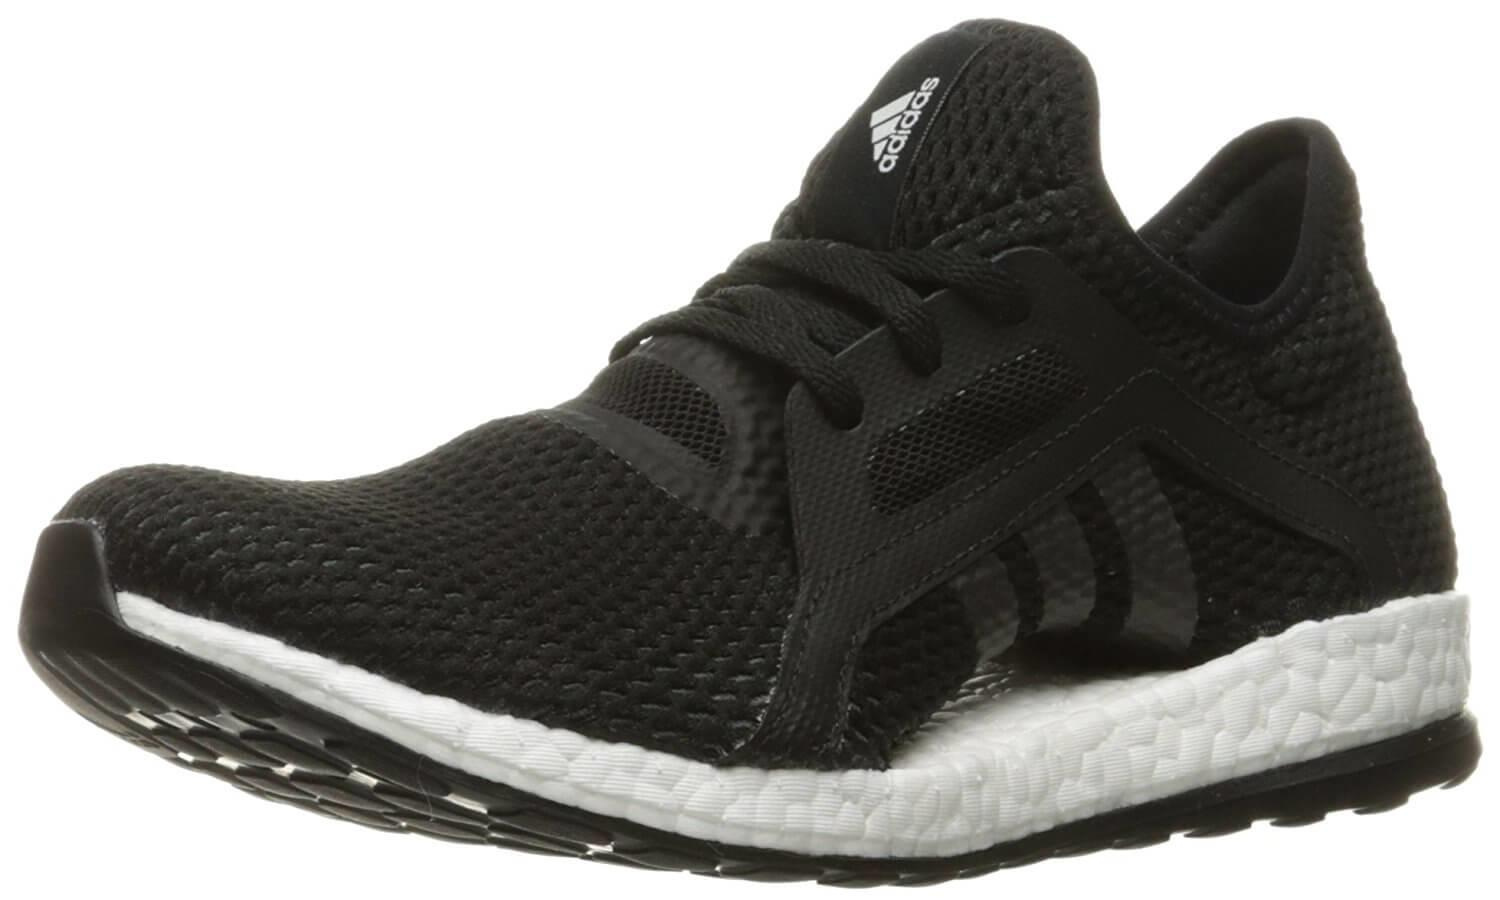 a9408967f495d Adidas PureBoost X Reviewed - To Buy or Not in May 2019